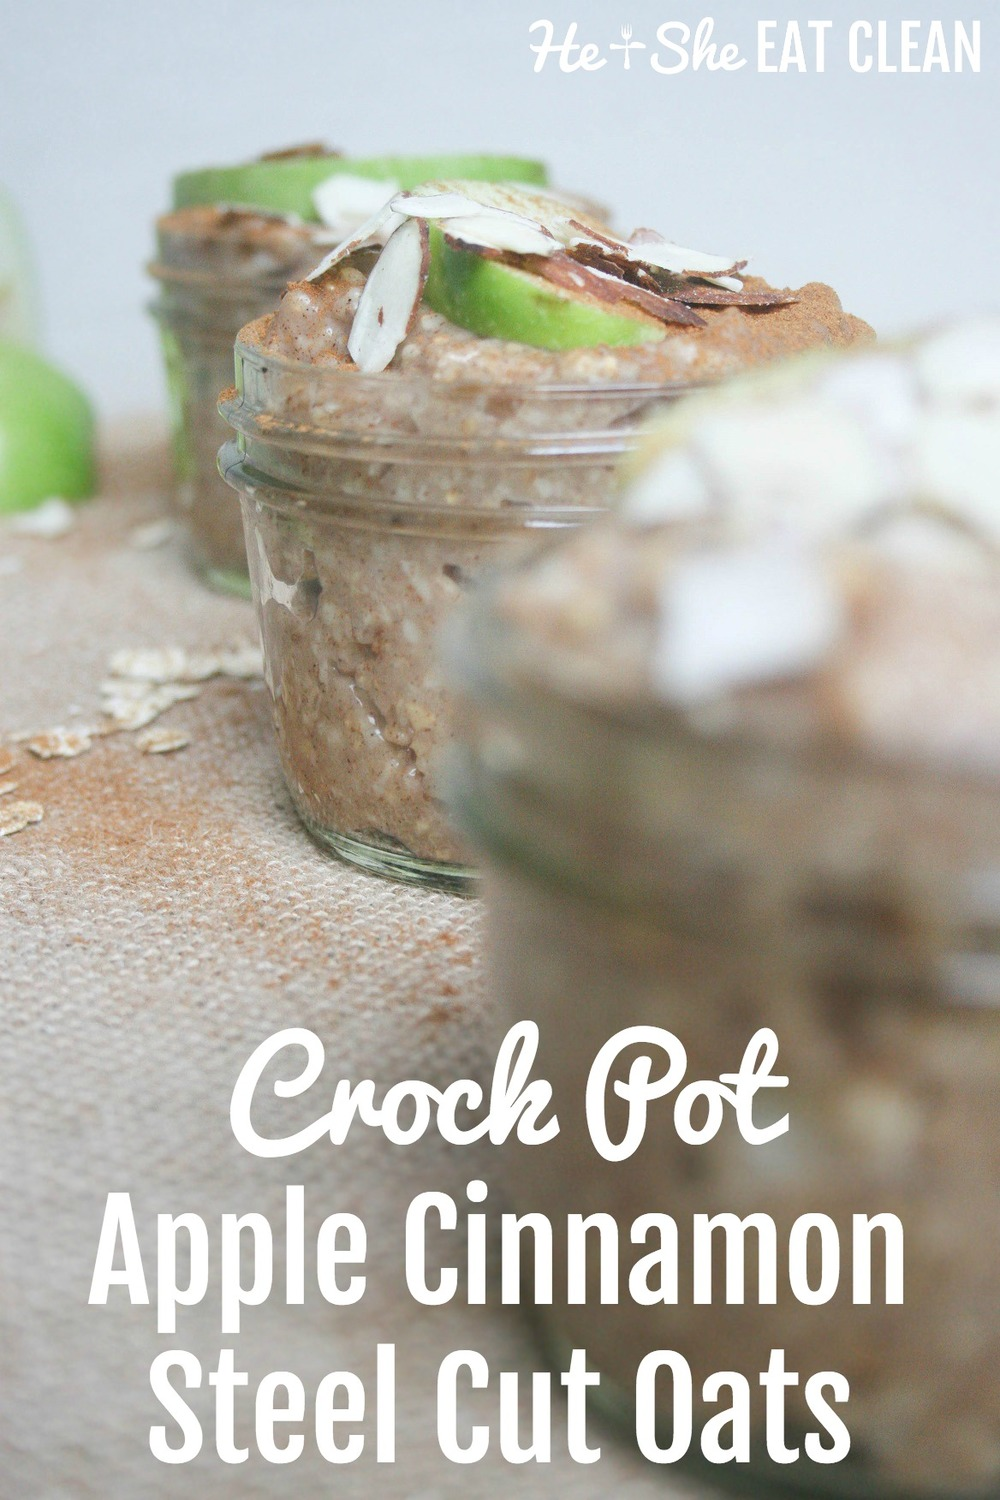 Crock Pot Apple Cinnamon Steel Cut Oats | He and She Eat Clean